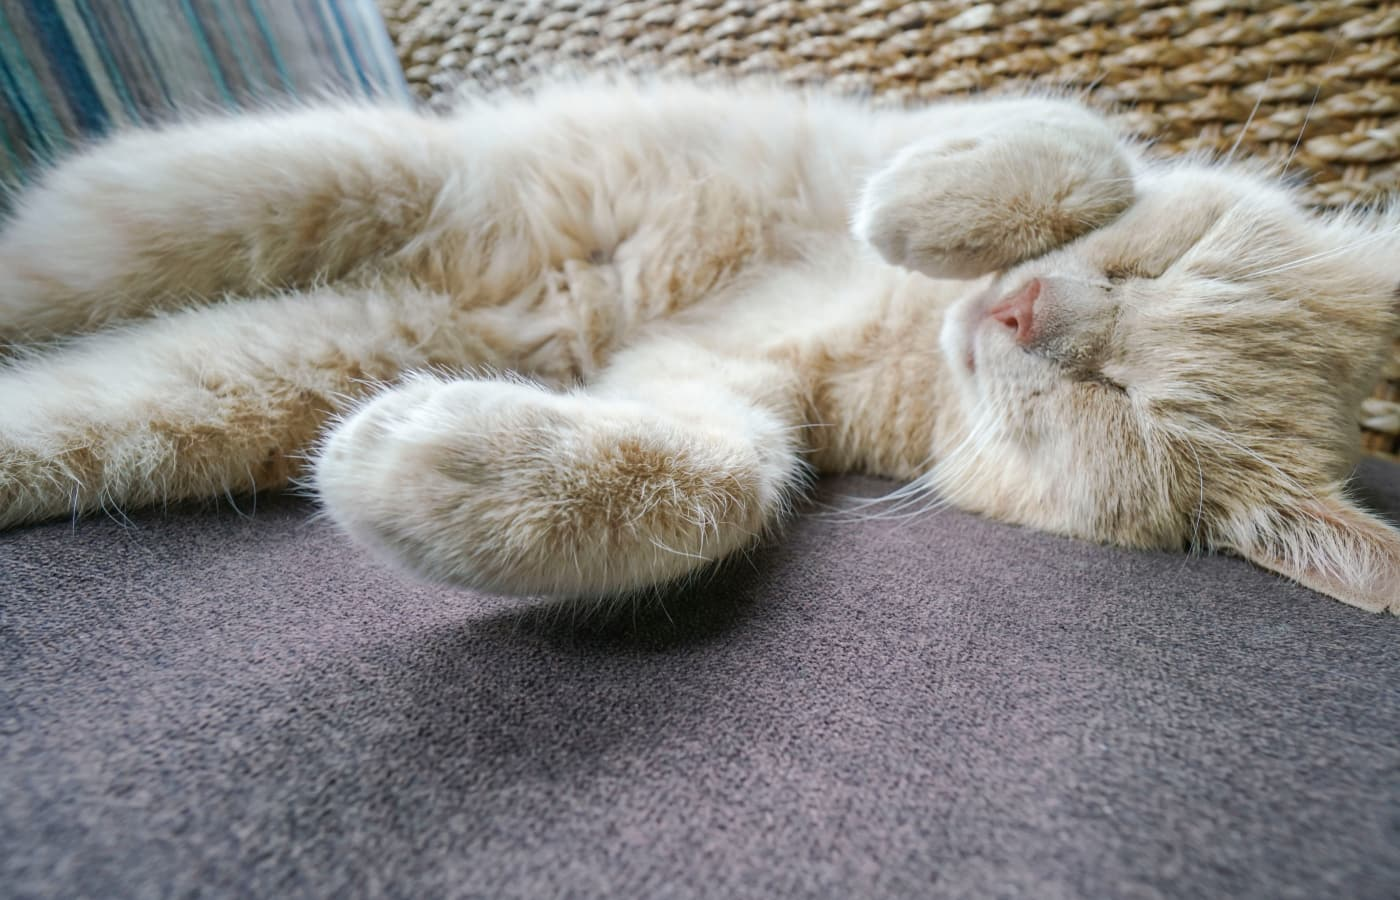 Cat resting comfortably at Value Pet Clinic - Shoreline in Shoreline, WA